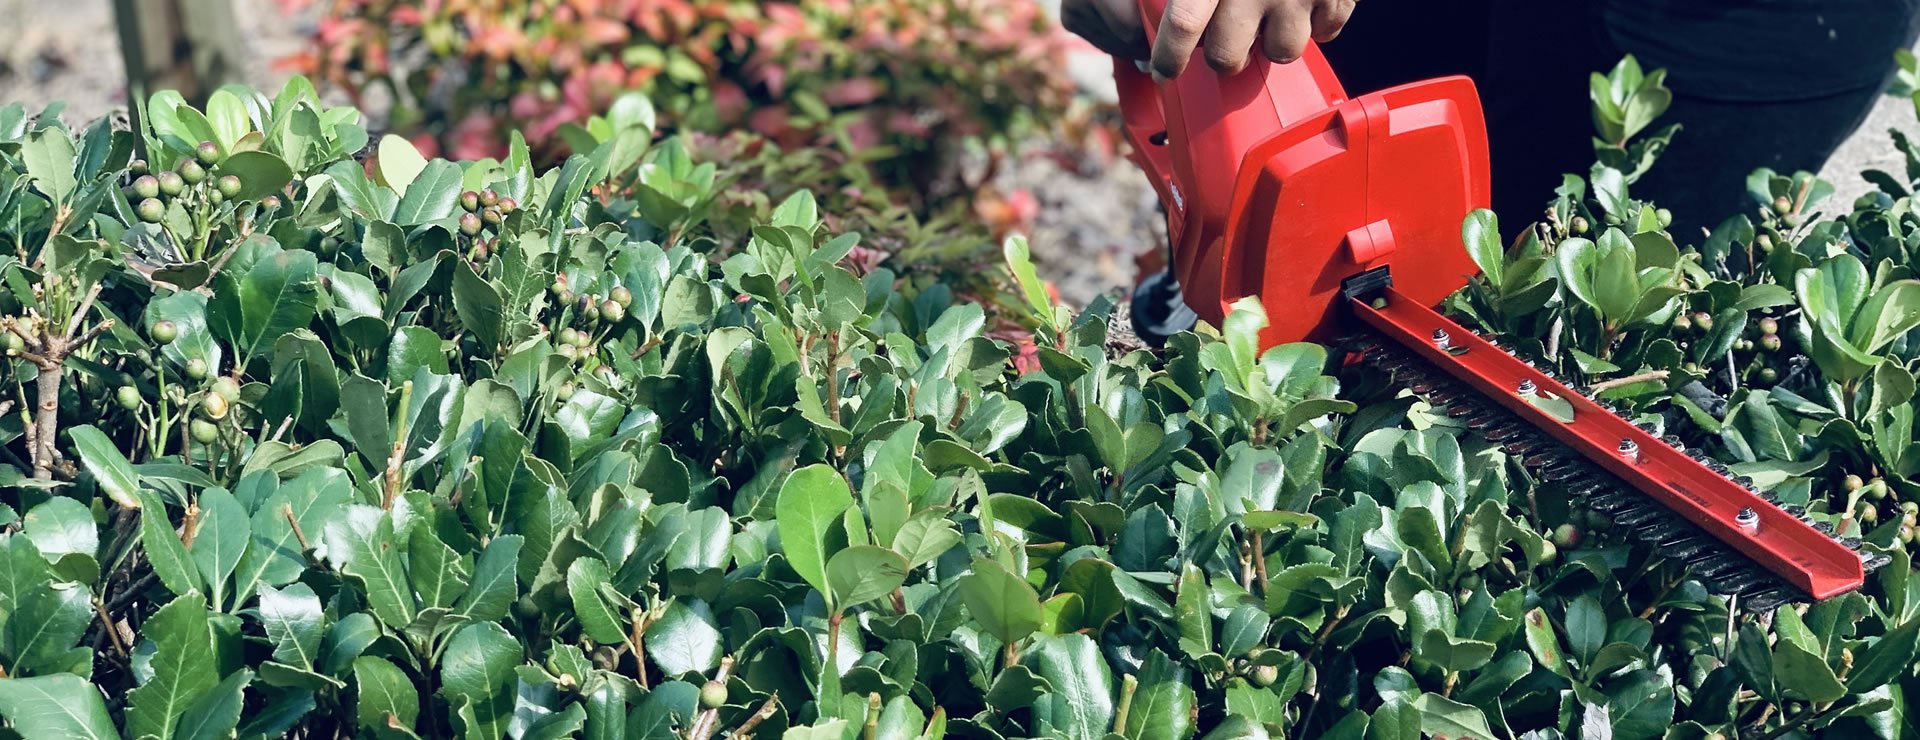 How to Maintain Hedges: PARASITES, PESTS AND OTHER PROBLEMS